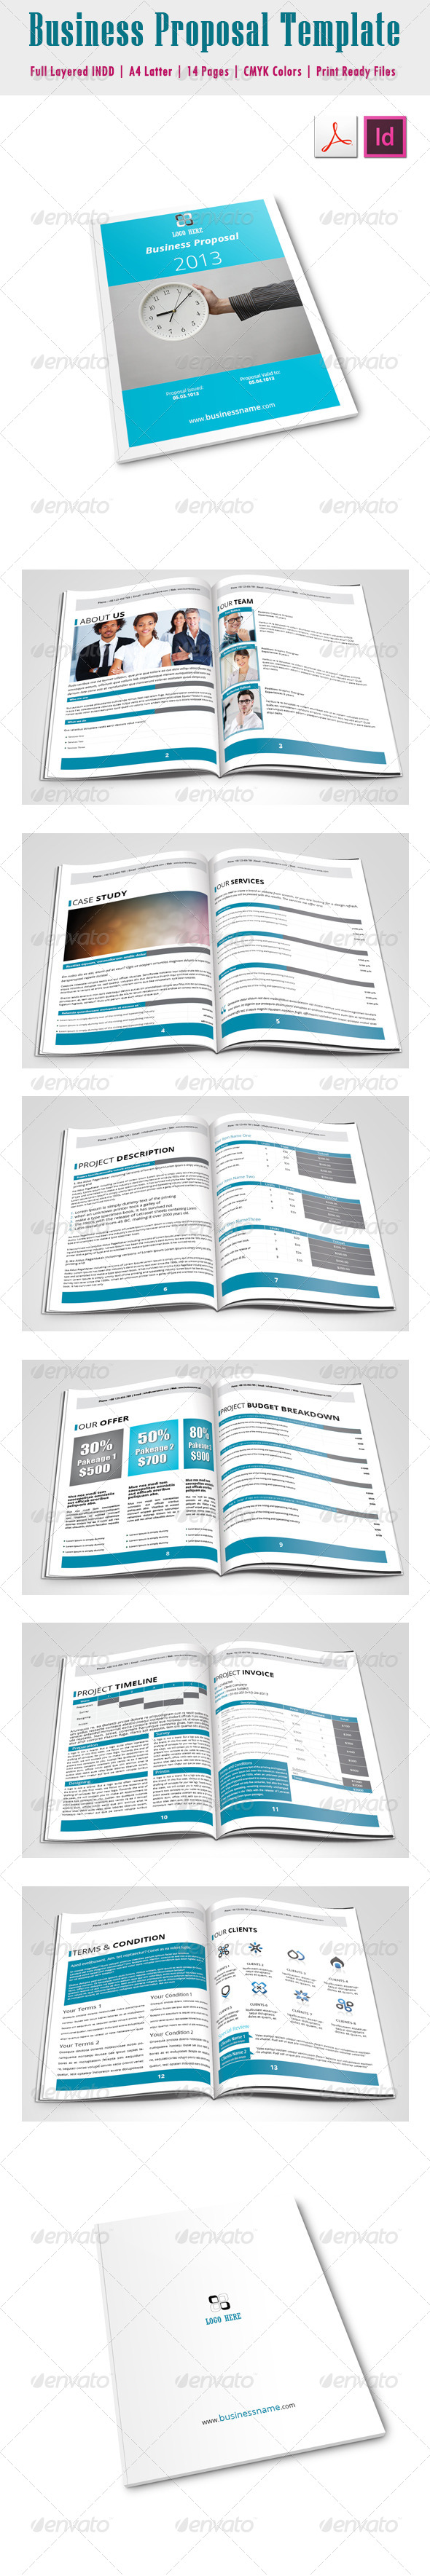 GraphicRiver Business Proposal Template 4688451